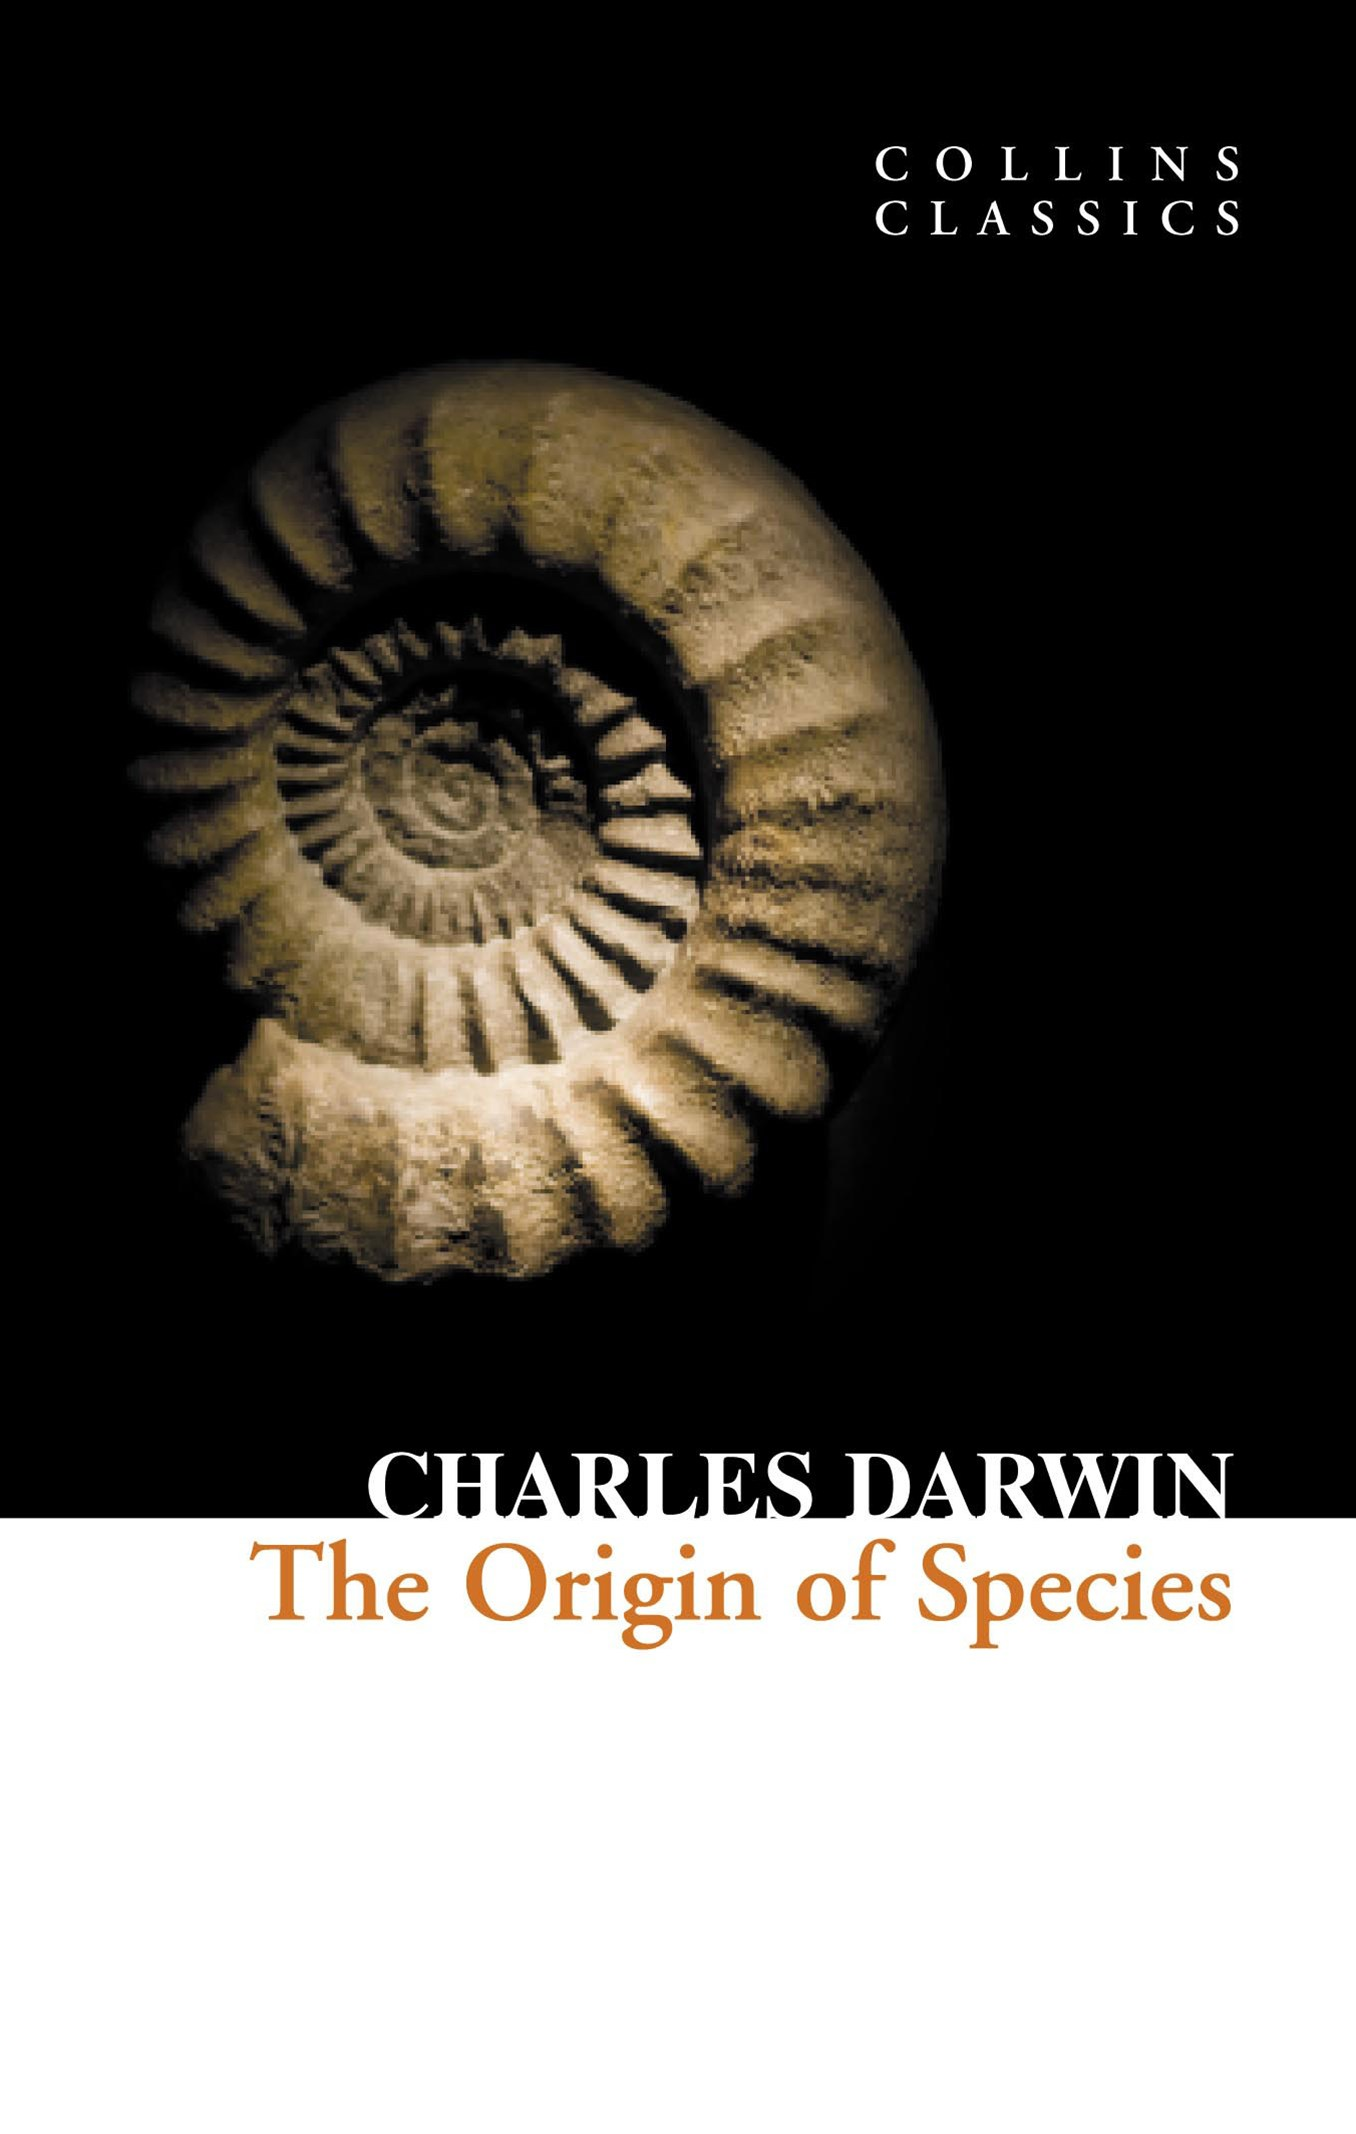 Collins Classics: The Origin of Species